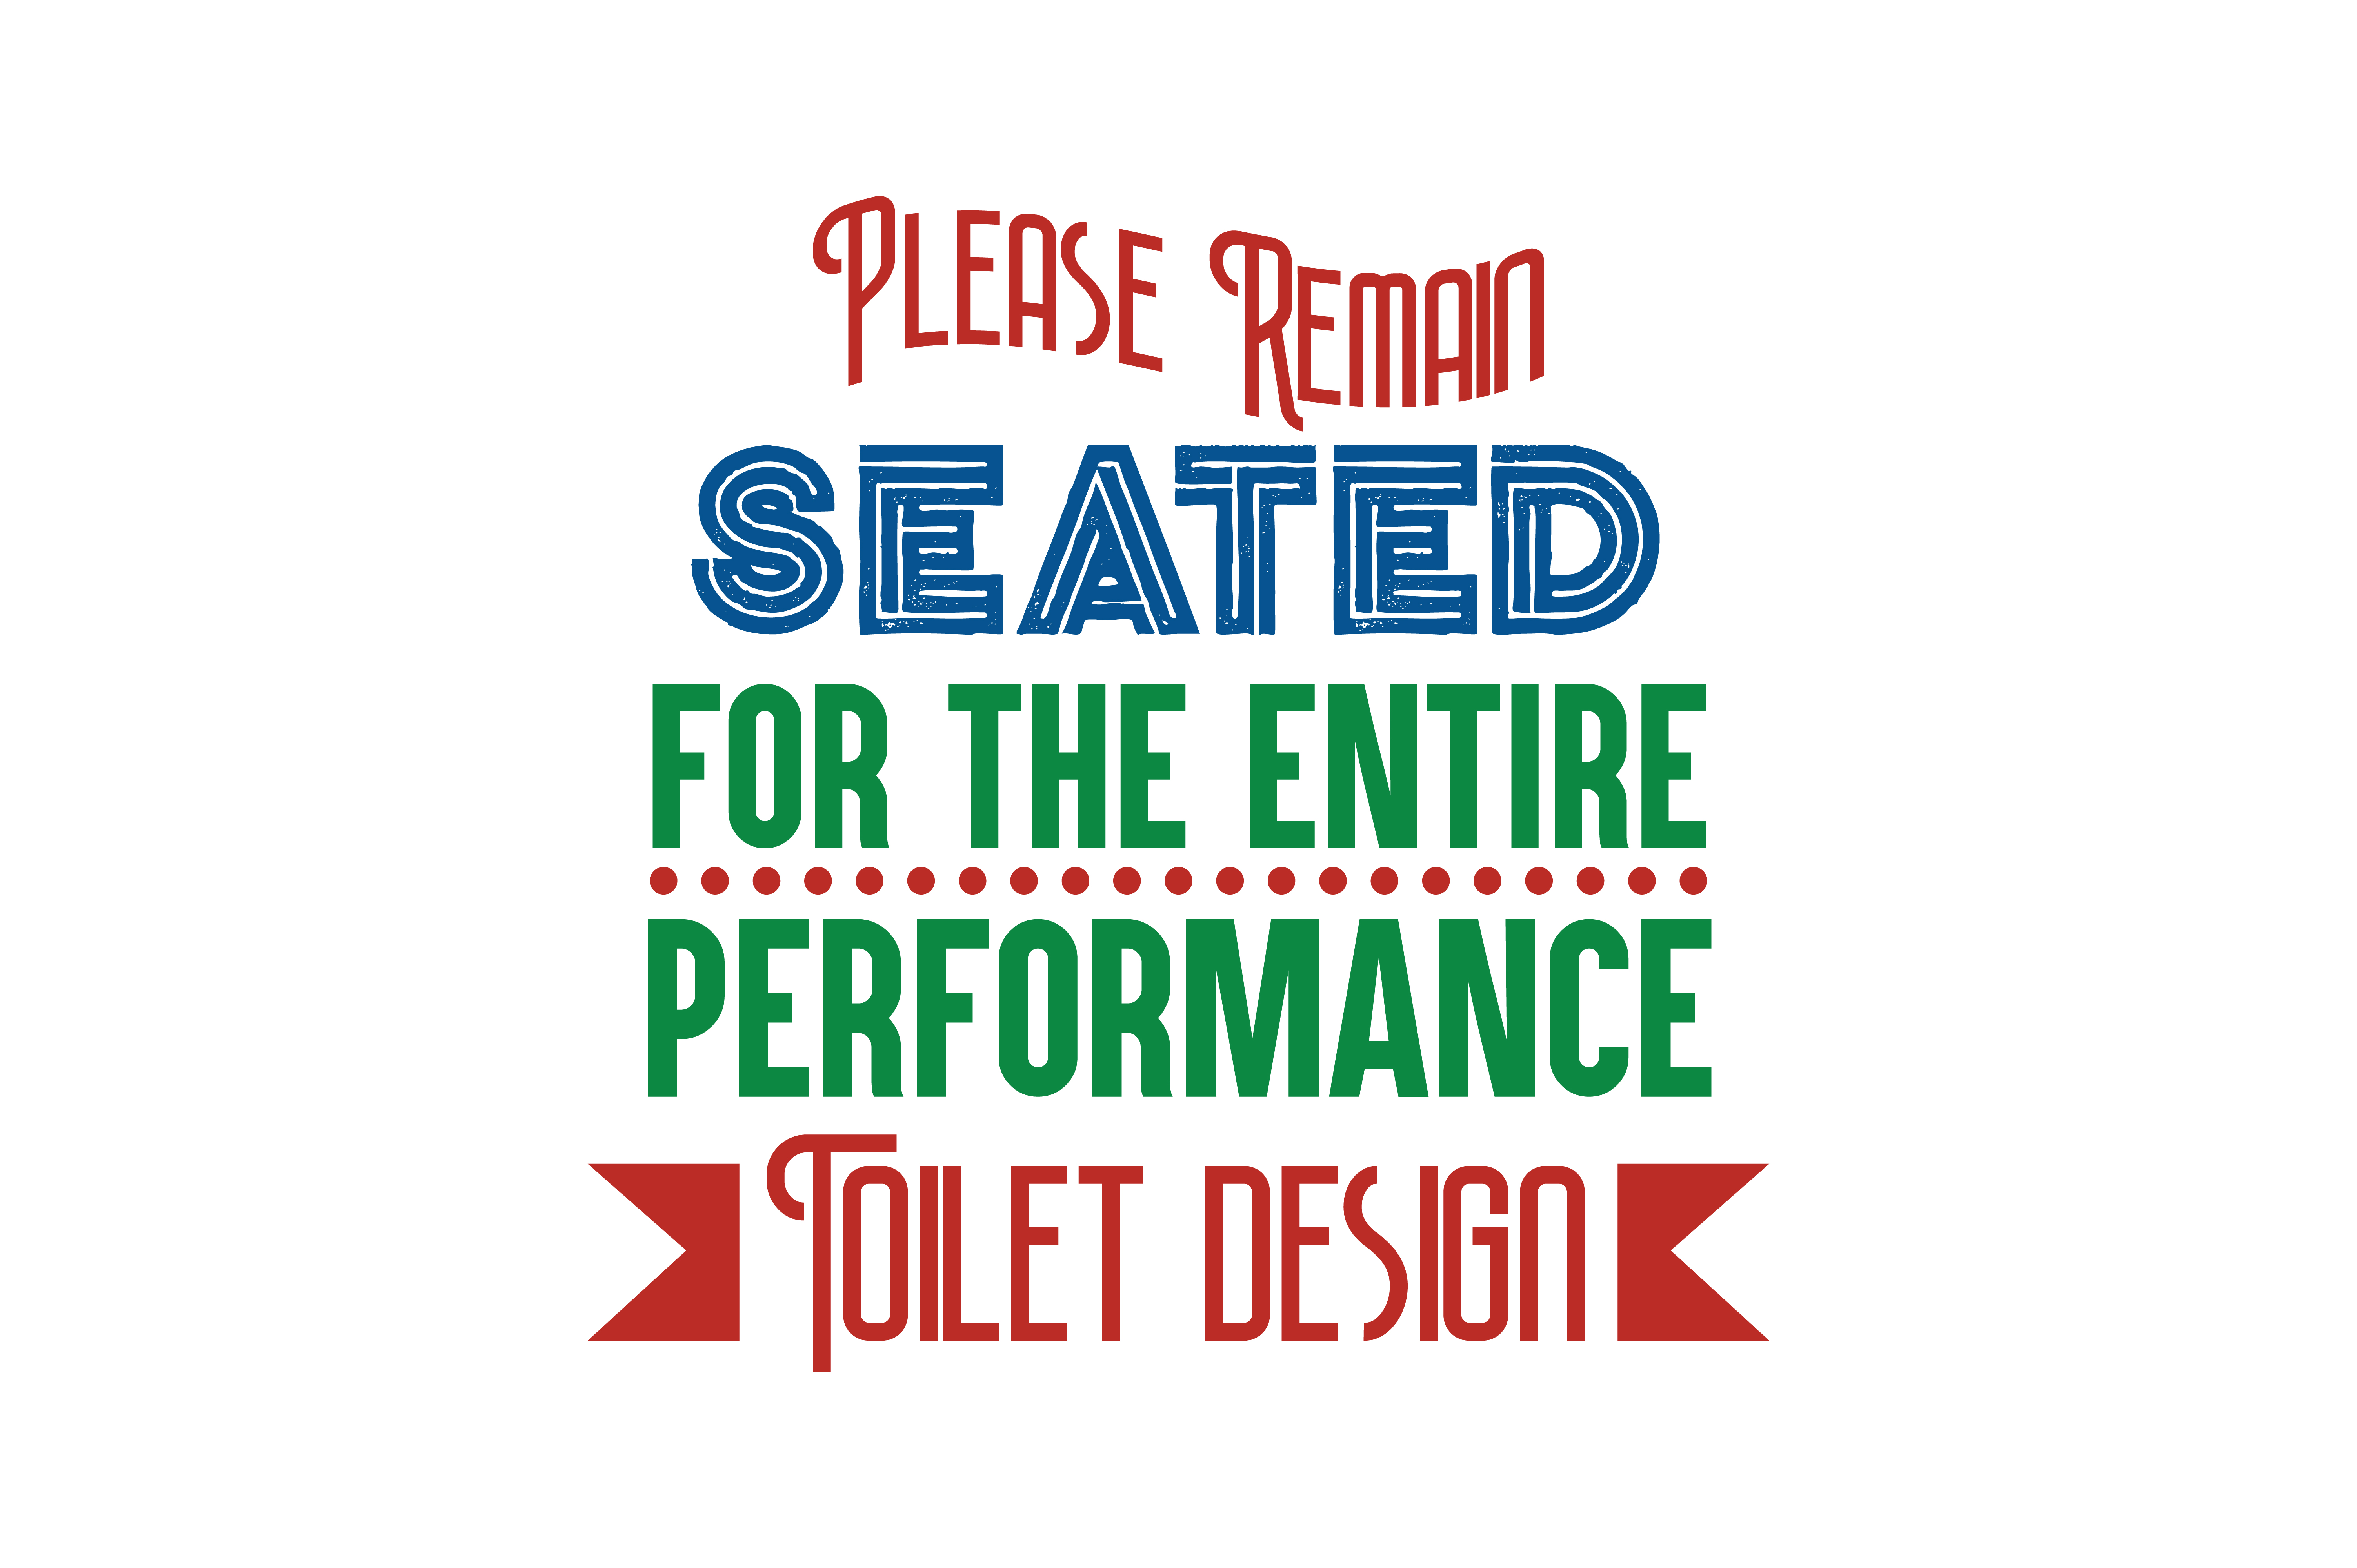 Download Free Please Remain Seated For The Entire Performance Toilet Design for Cricut Explore, Silhouette and other cutting machines.